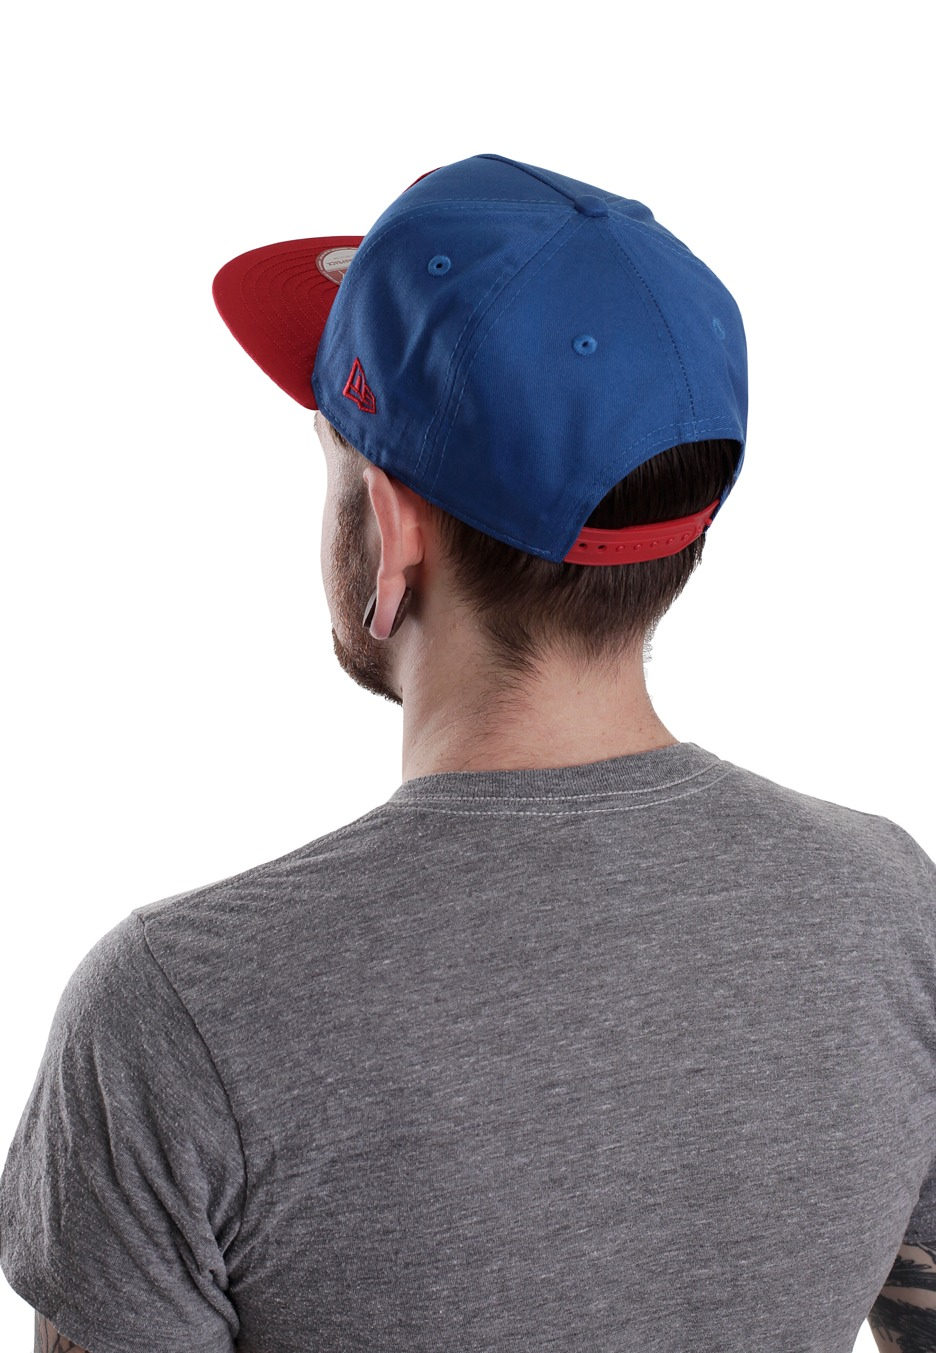 b7d572687fc New Era - Basic Badge 9Fifty Superman Blue Red - Cap - Impericon.com UK